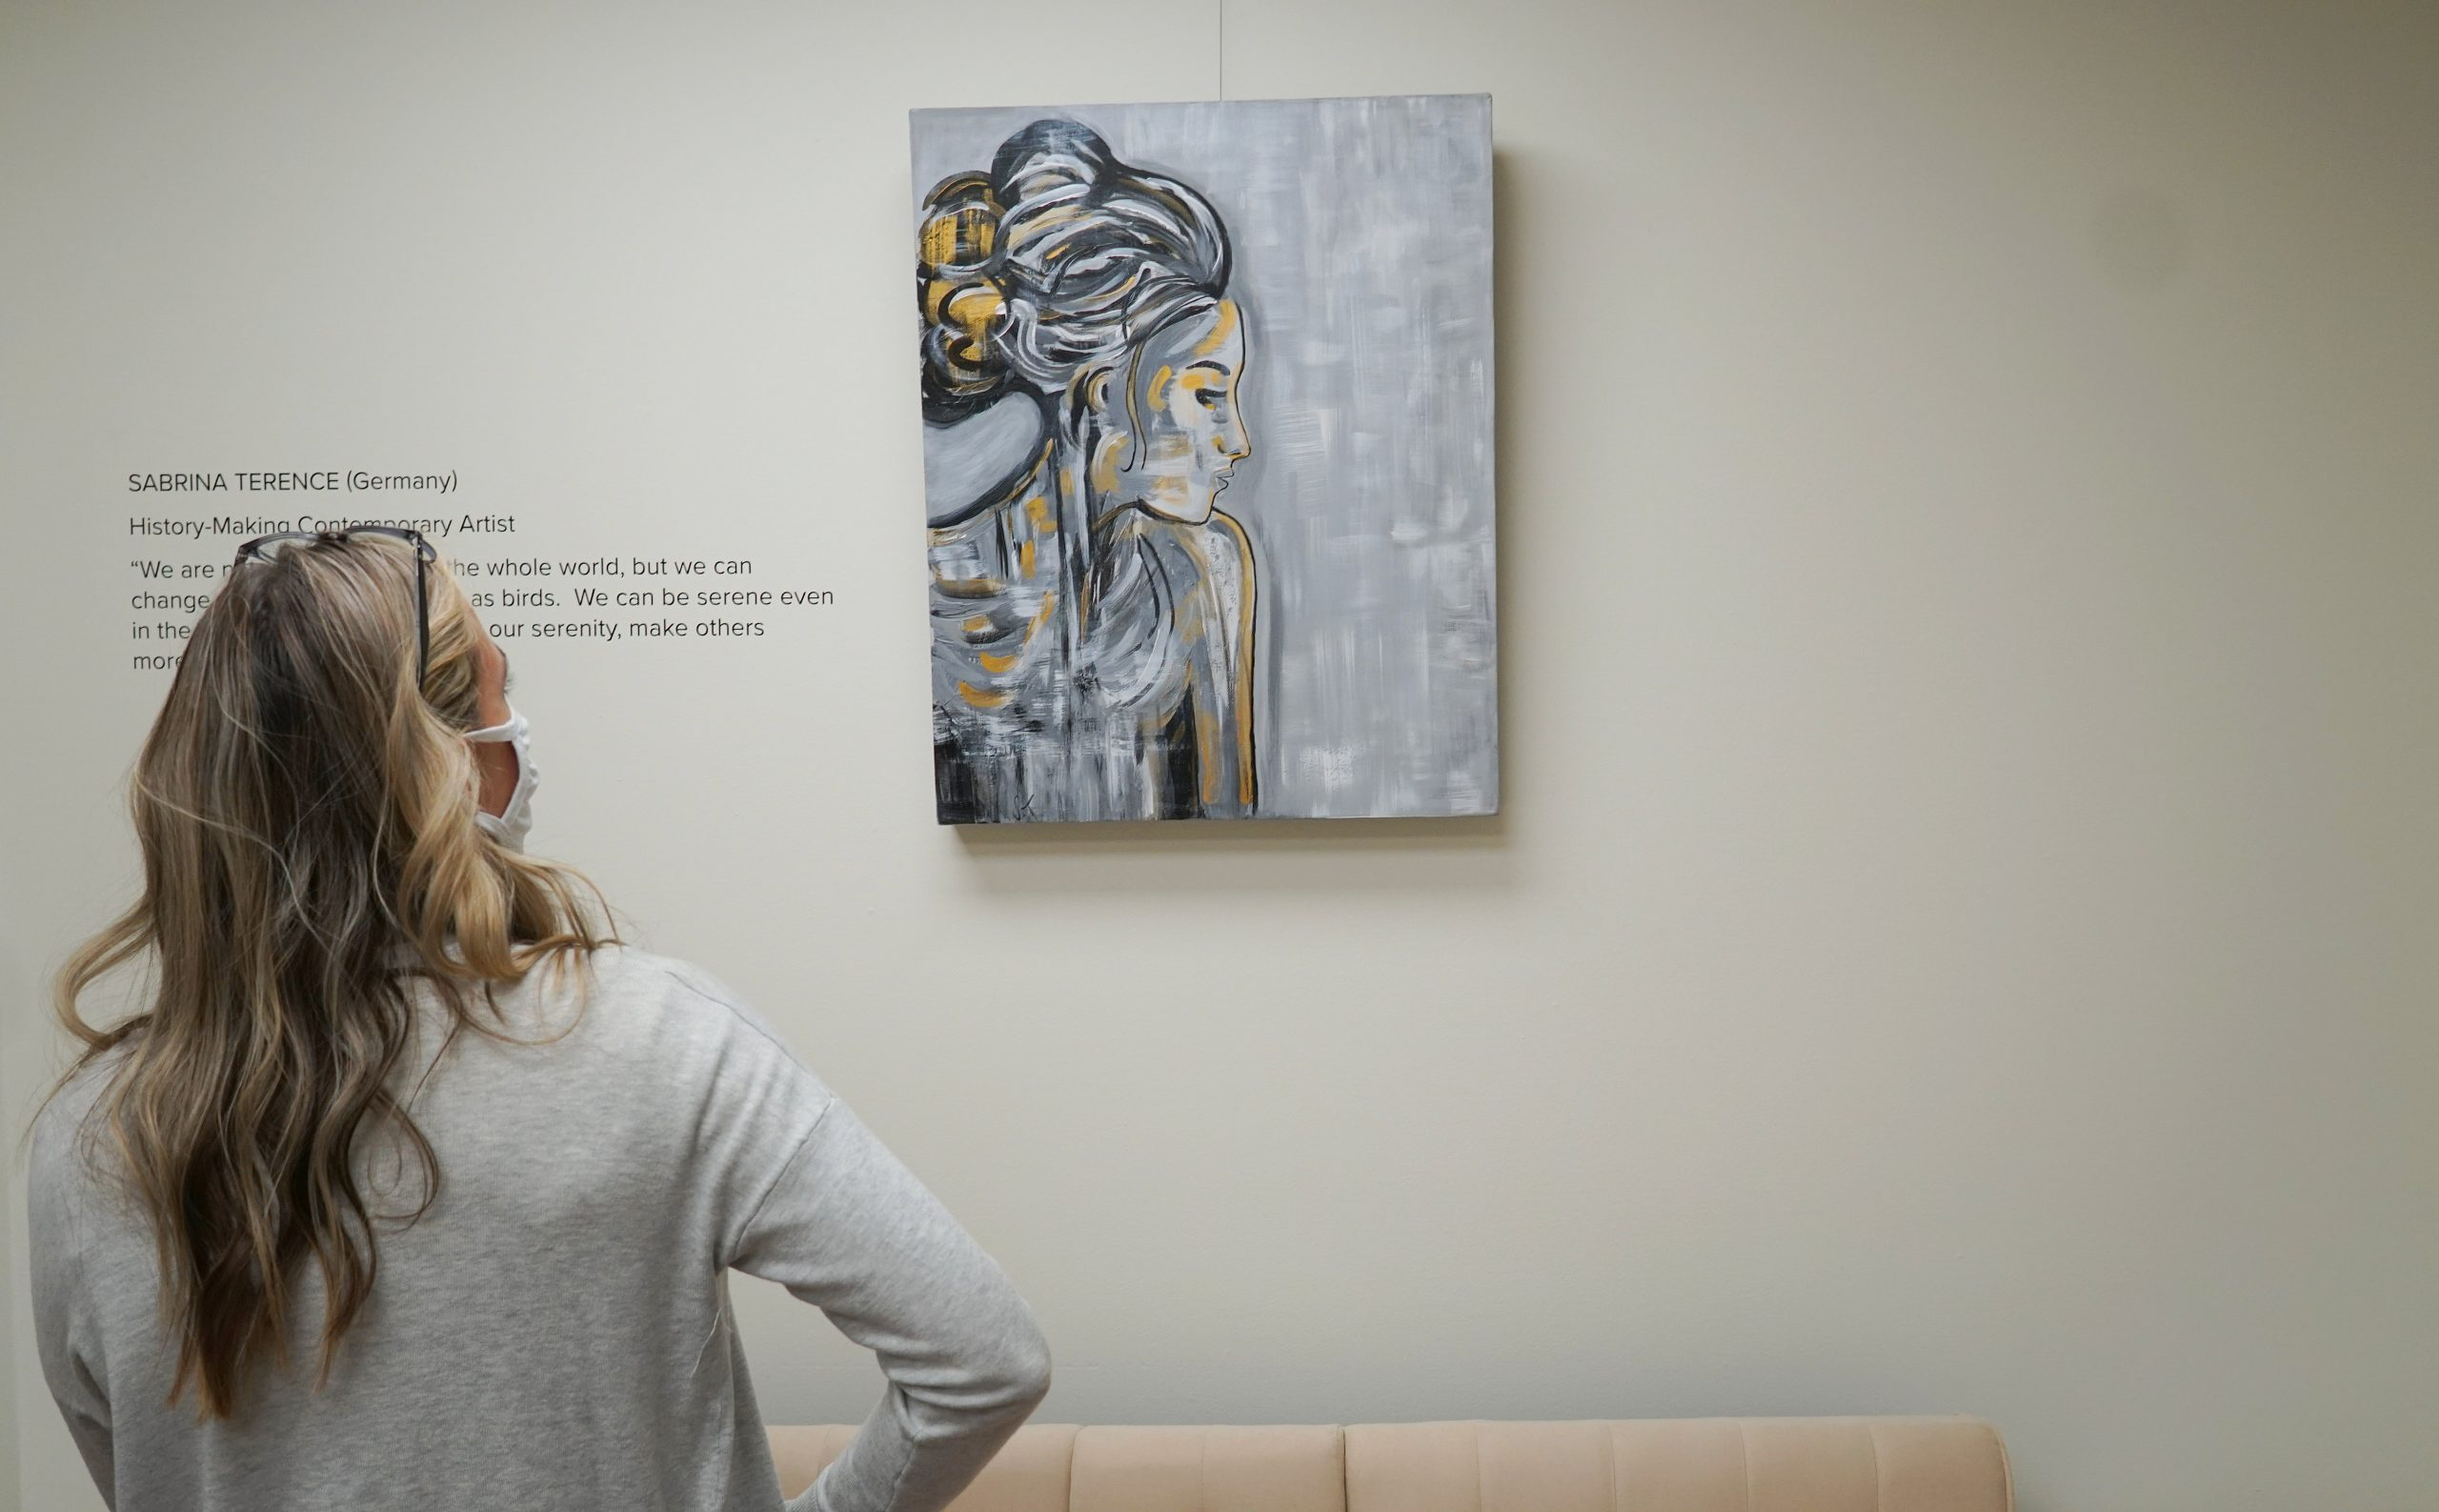 A White woman stands looking at a painting on the wall with a woman with a bun looking in the distance.